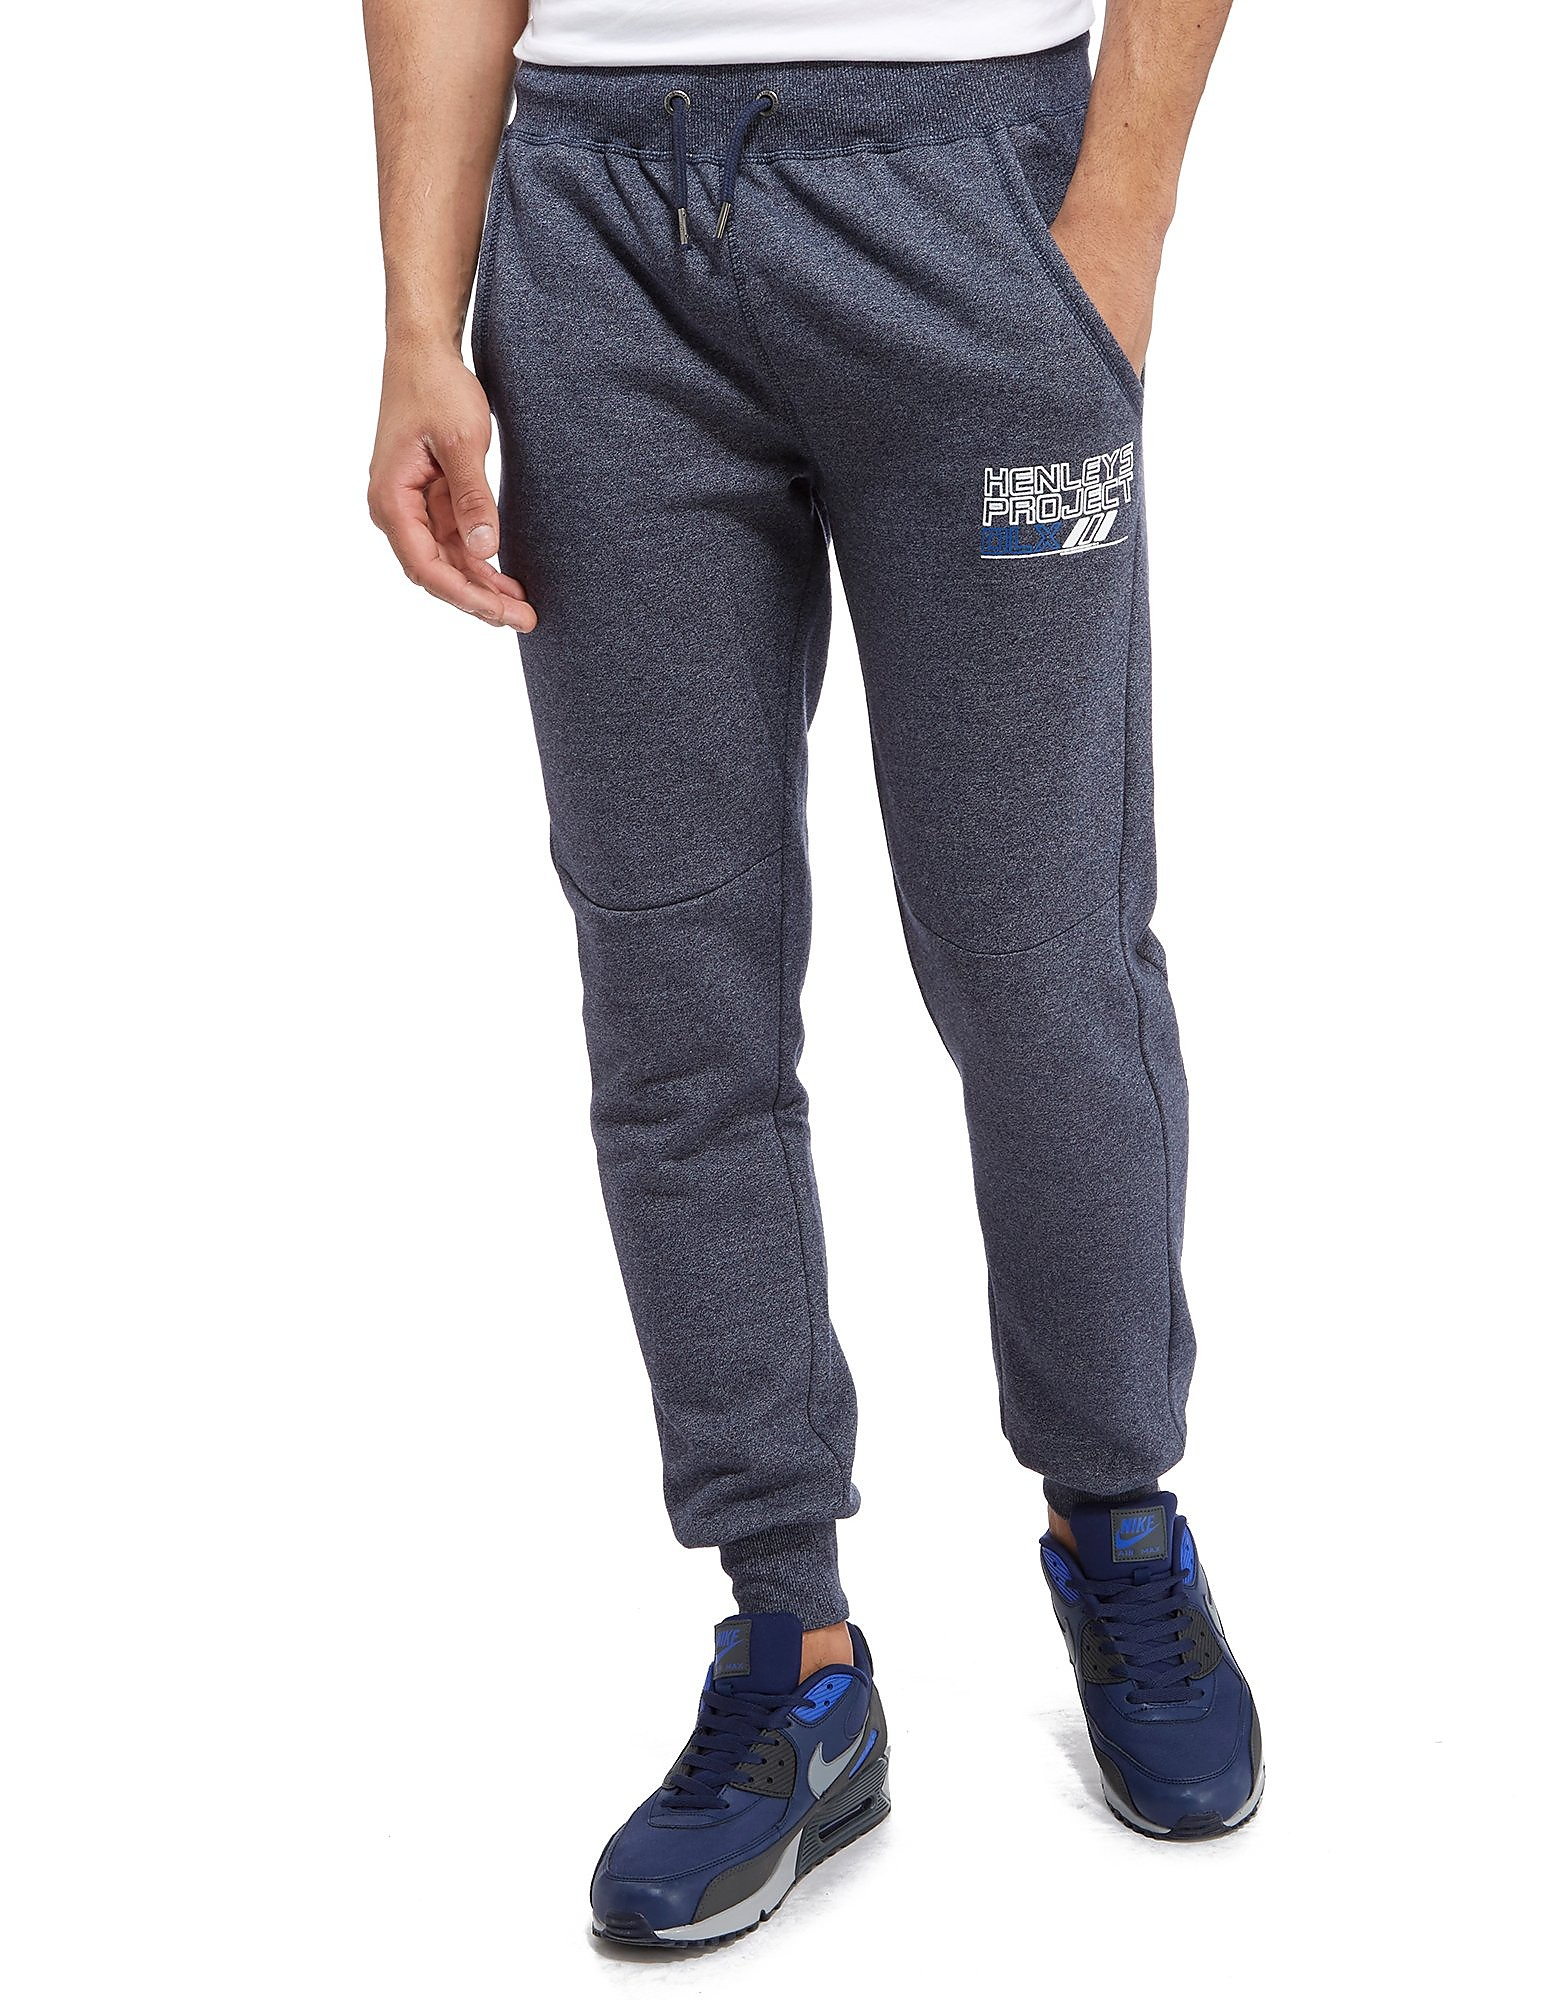 Henleys Defence Fleece Pants